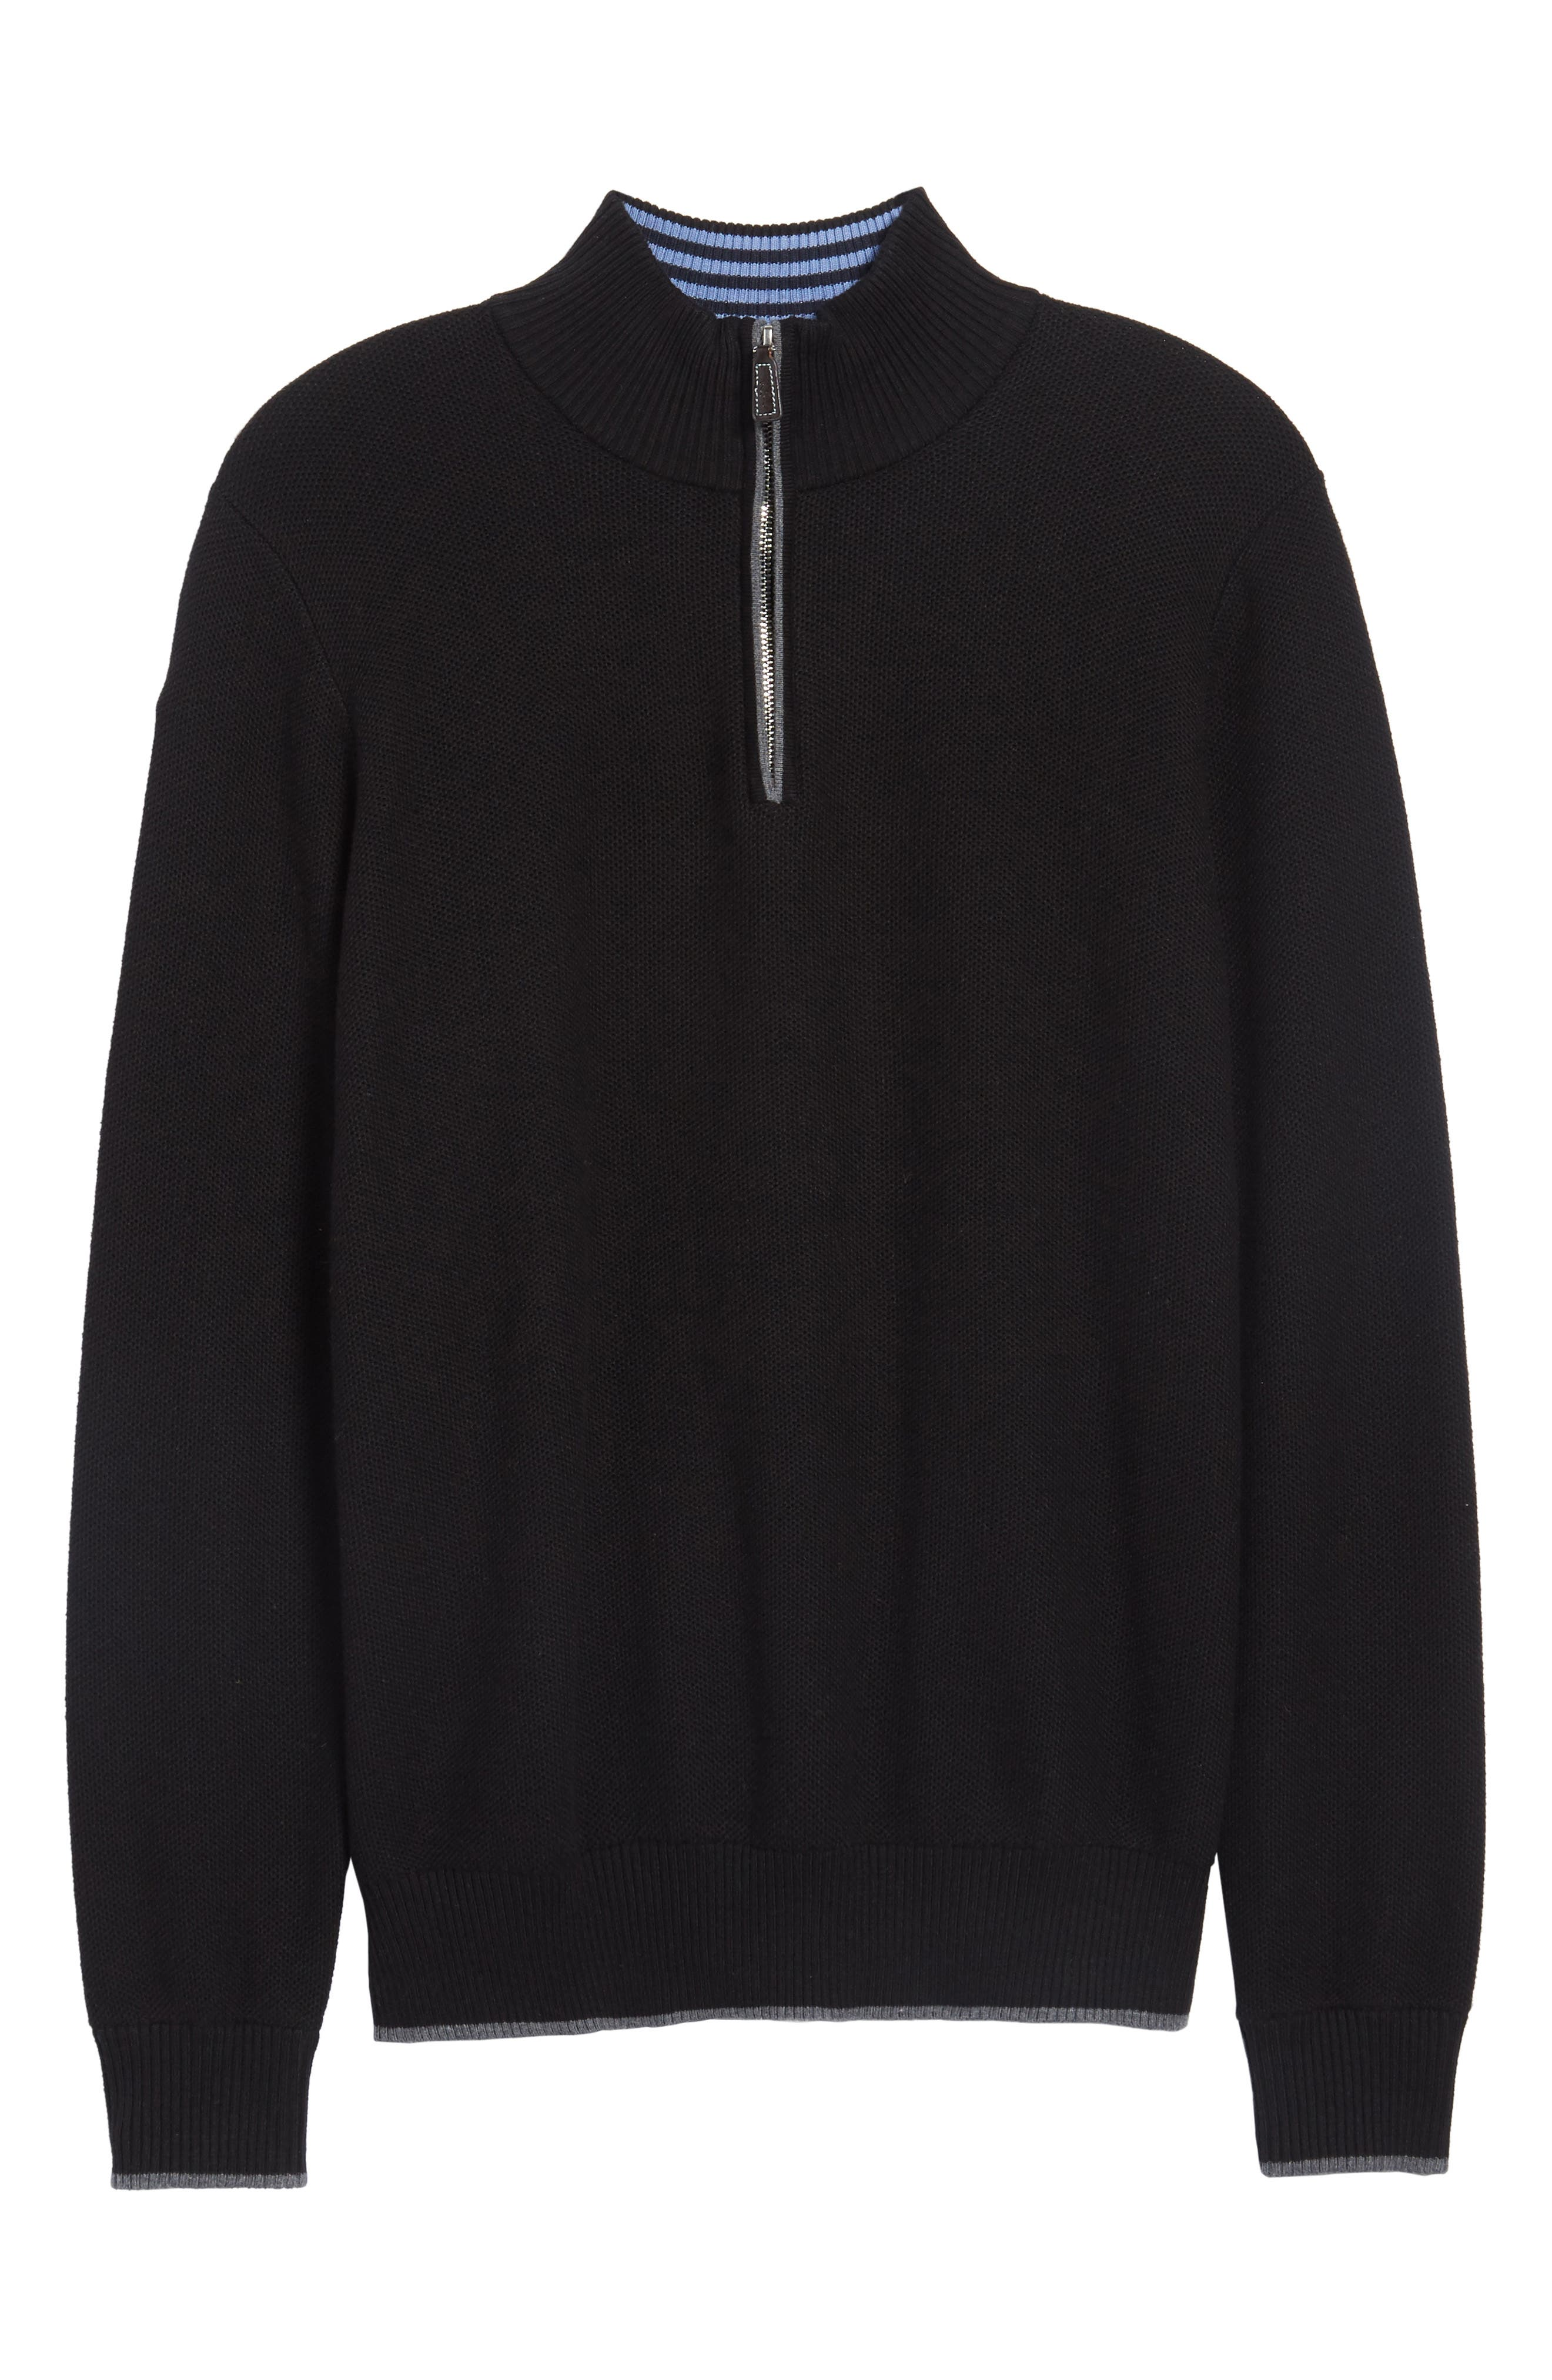 Lafitte Tipped Quarter Zip Sweater,                             Alternate thumbnail 6, color,                             001